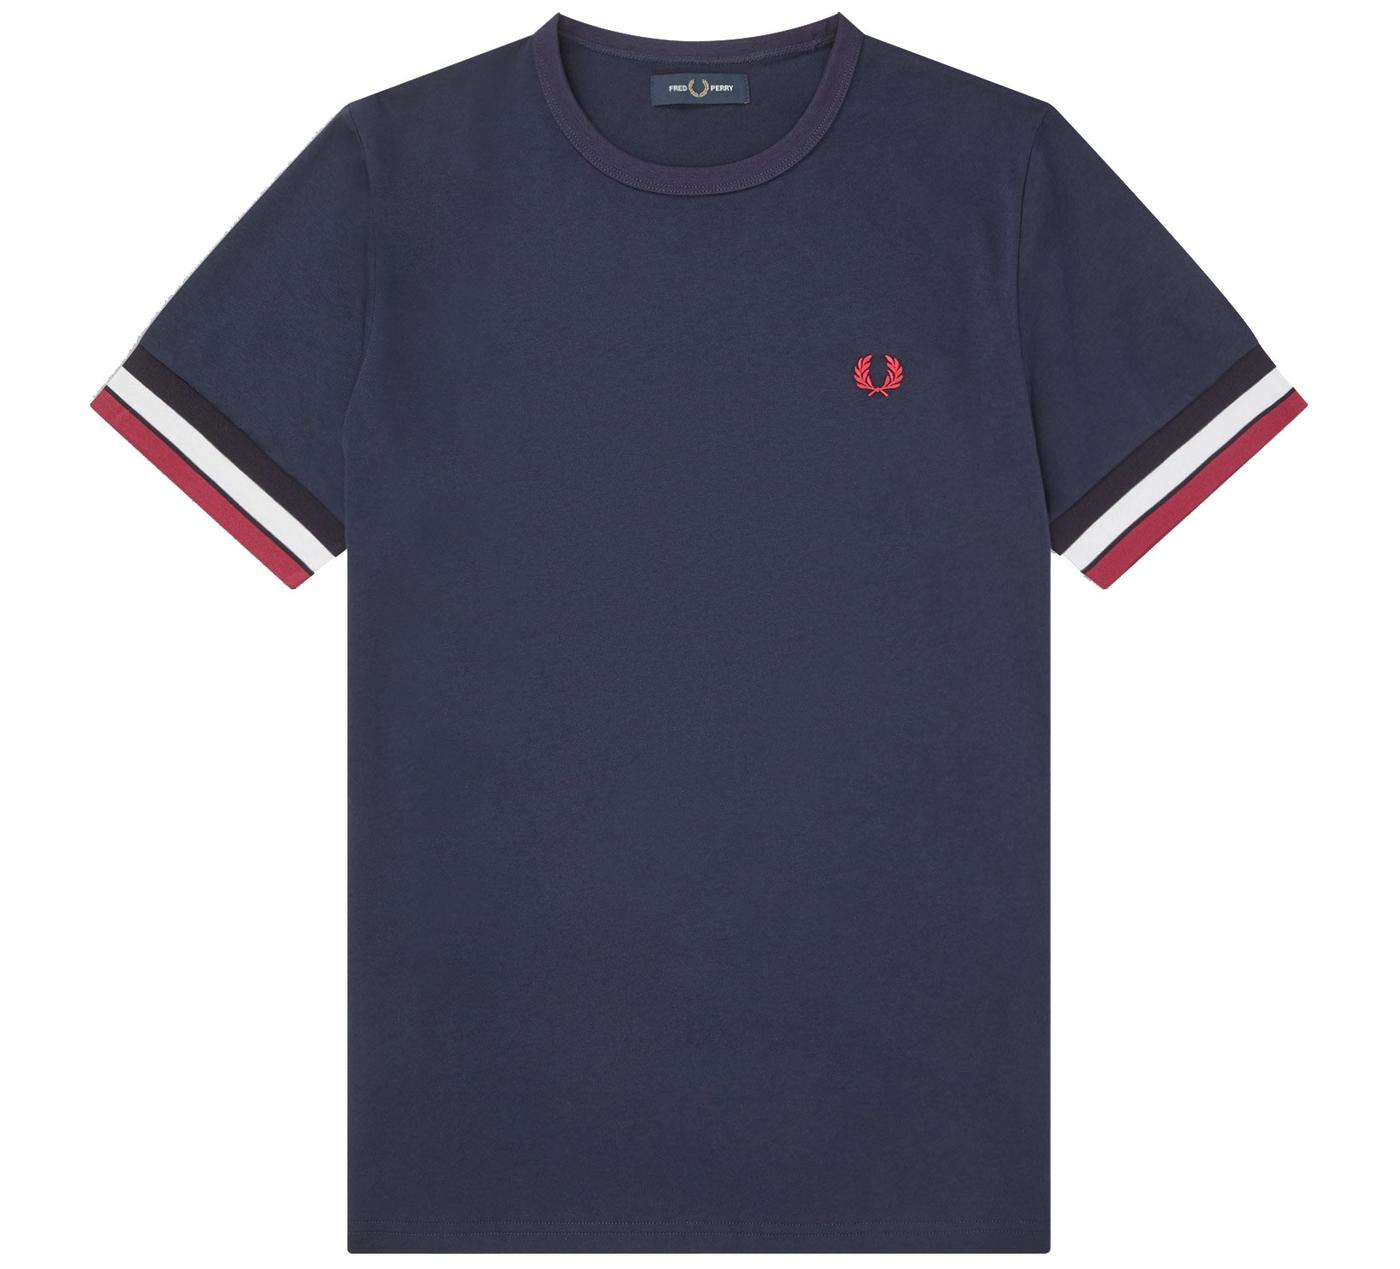 FRED PERRY Men's Retro Bold Tipped T-Shirt NAVY